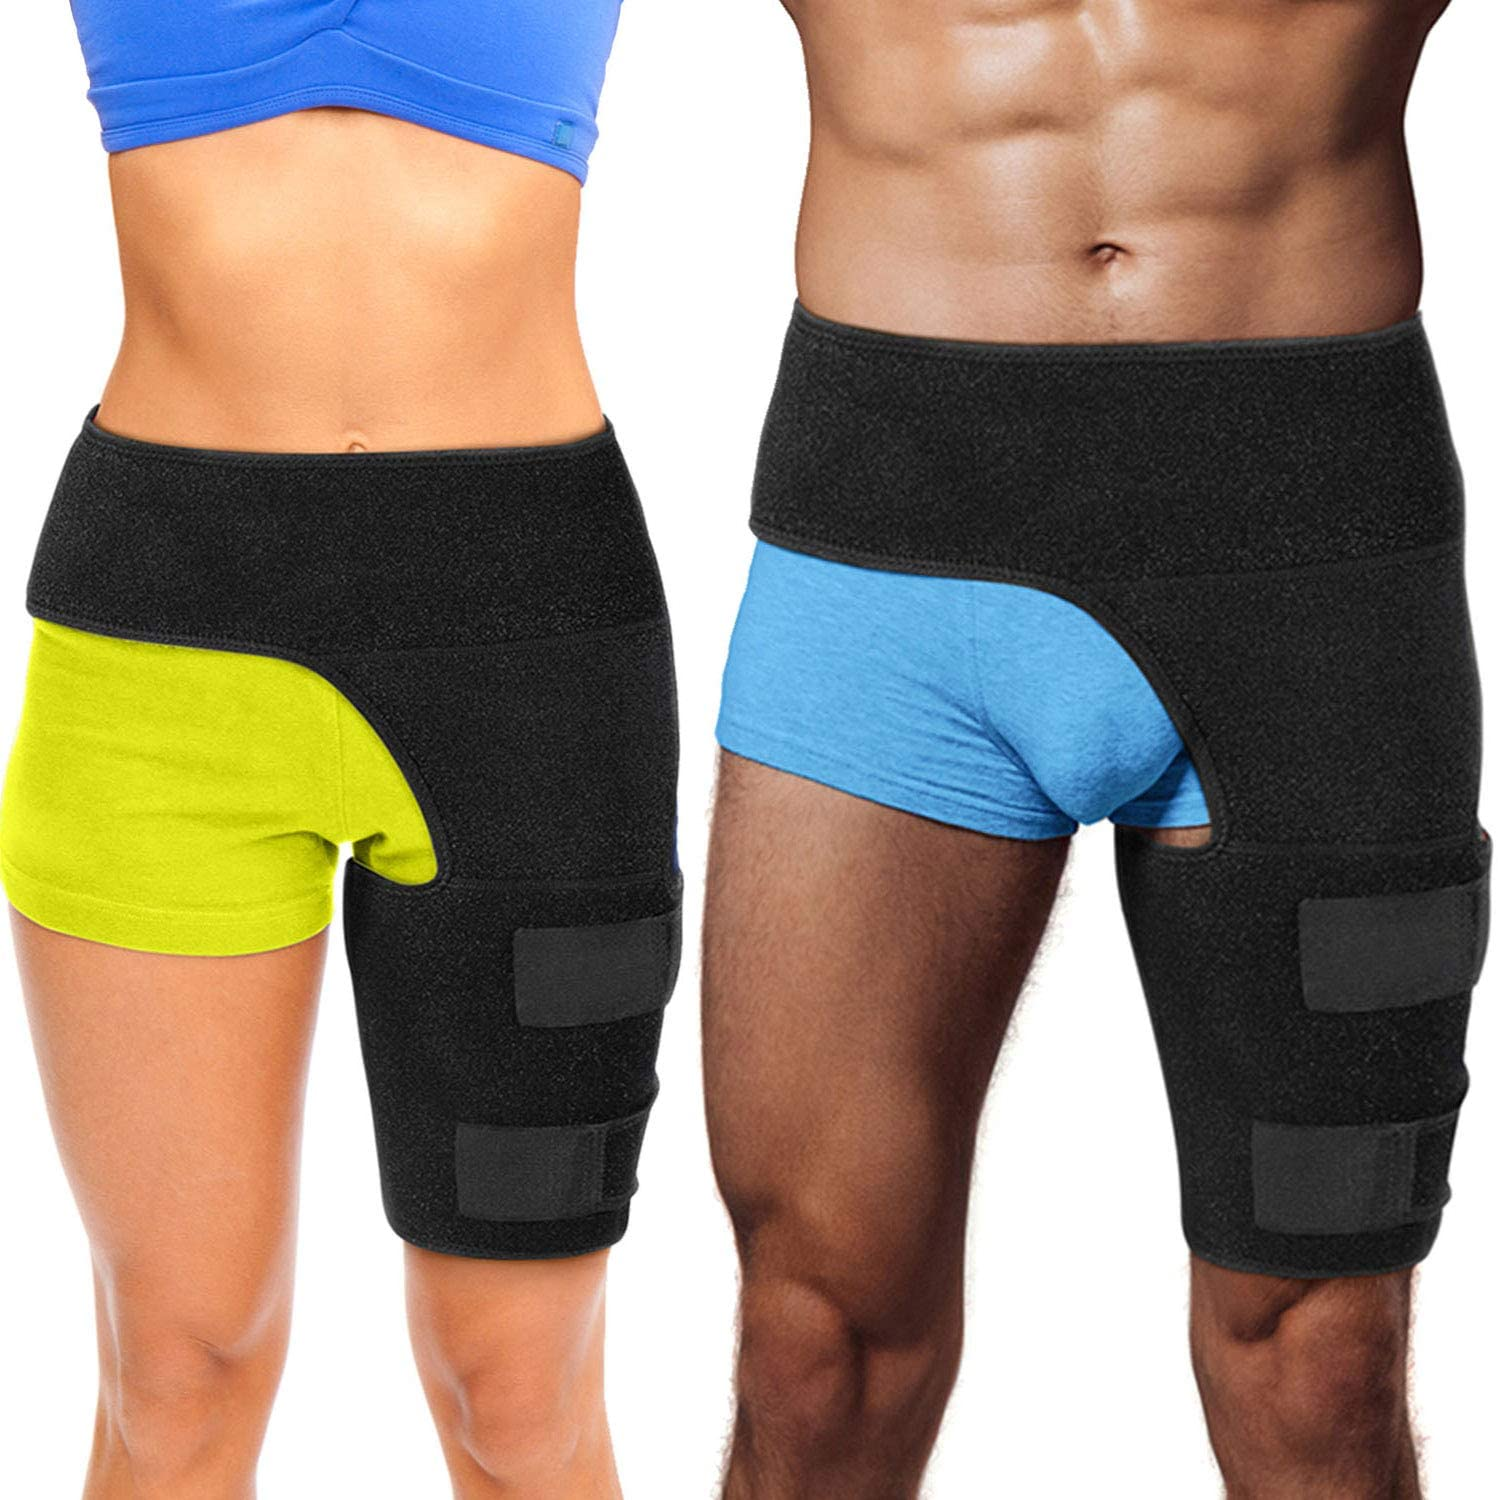 Cramer Neoprene Thigh Compression Sleeve Best Thigh Support Quadriceps Hamstrings Compression Leg Sleeves Compression Sleeves Running